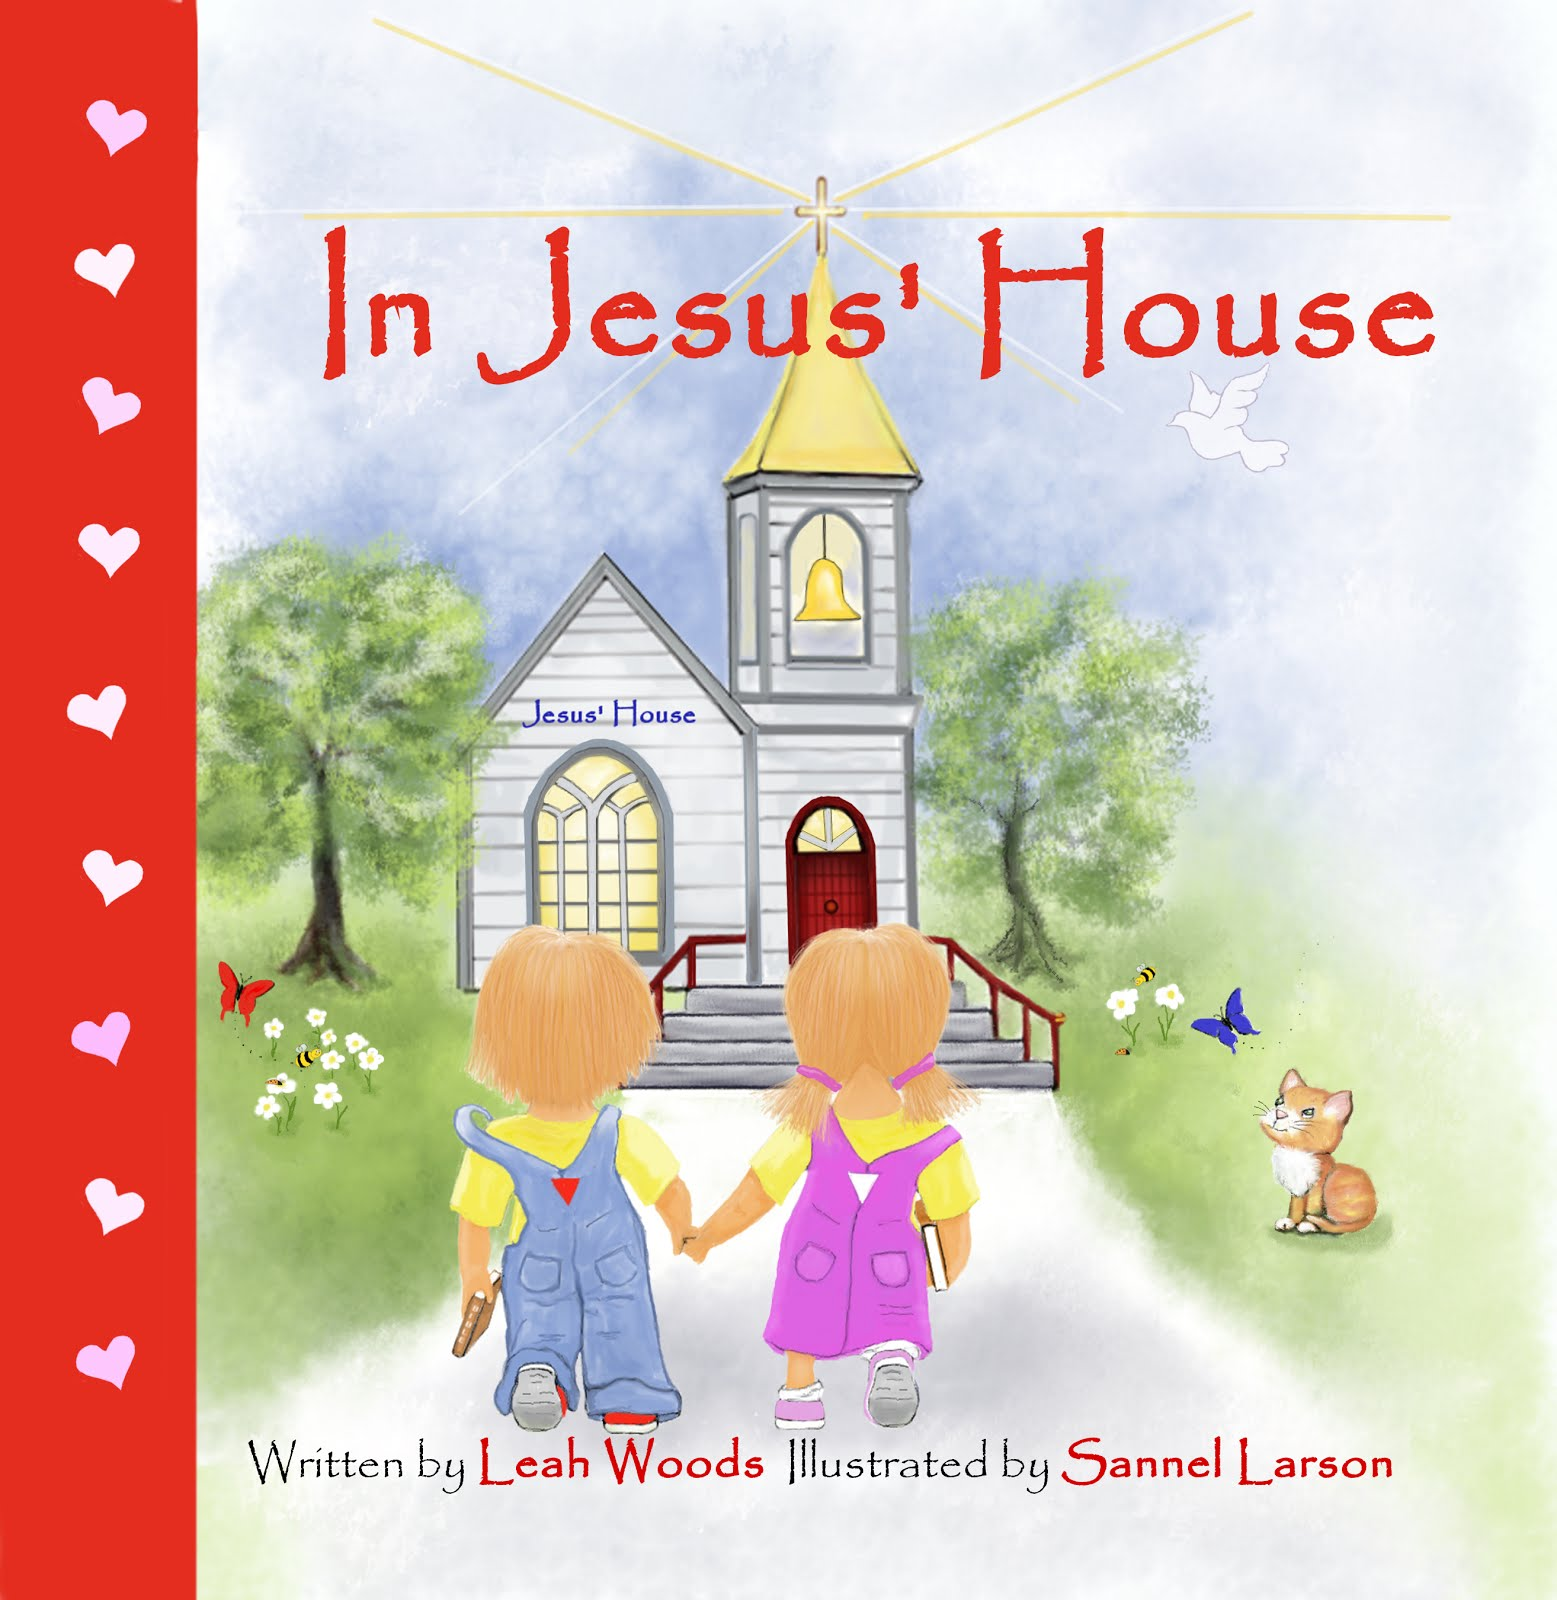 In Jesus' House by Christian author, Leah Woods, illustrated by Sannel Larson